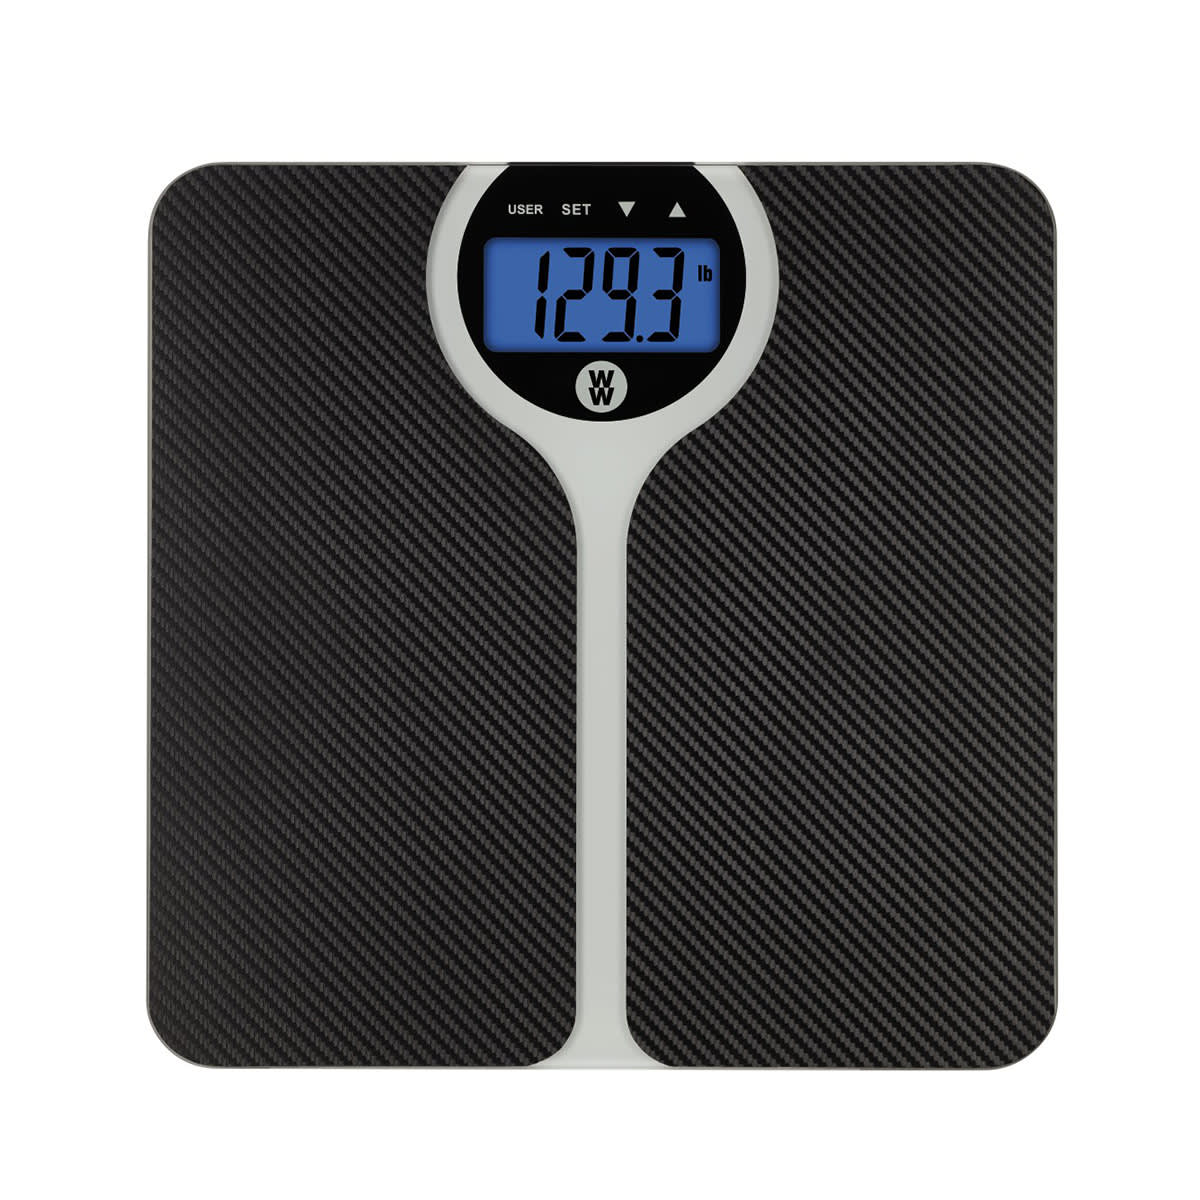 WW Digital Weight Scale with backlight and a Textured surface provides traction, Toggle button to switch between pounds and kilograms, 400-lb weight capacity, Measures body weight and body mass index (BMI).